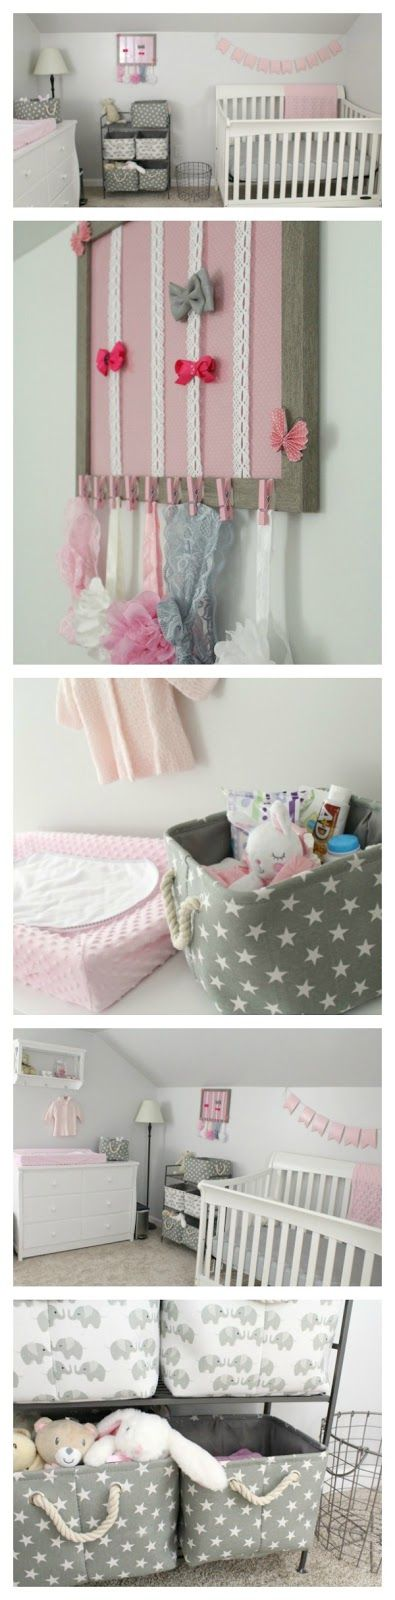 Gray, white, and light pink nursery for a baby girl- Minky pink changing pad cover, white dresser as changing table, hair bow and headband decorative frame, grey canvas and rope decorative storage baskets with stars and elephants, metal wire laundry basket, white crib from Target with polka dot fitted sheet and pink flag banner decoration